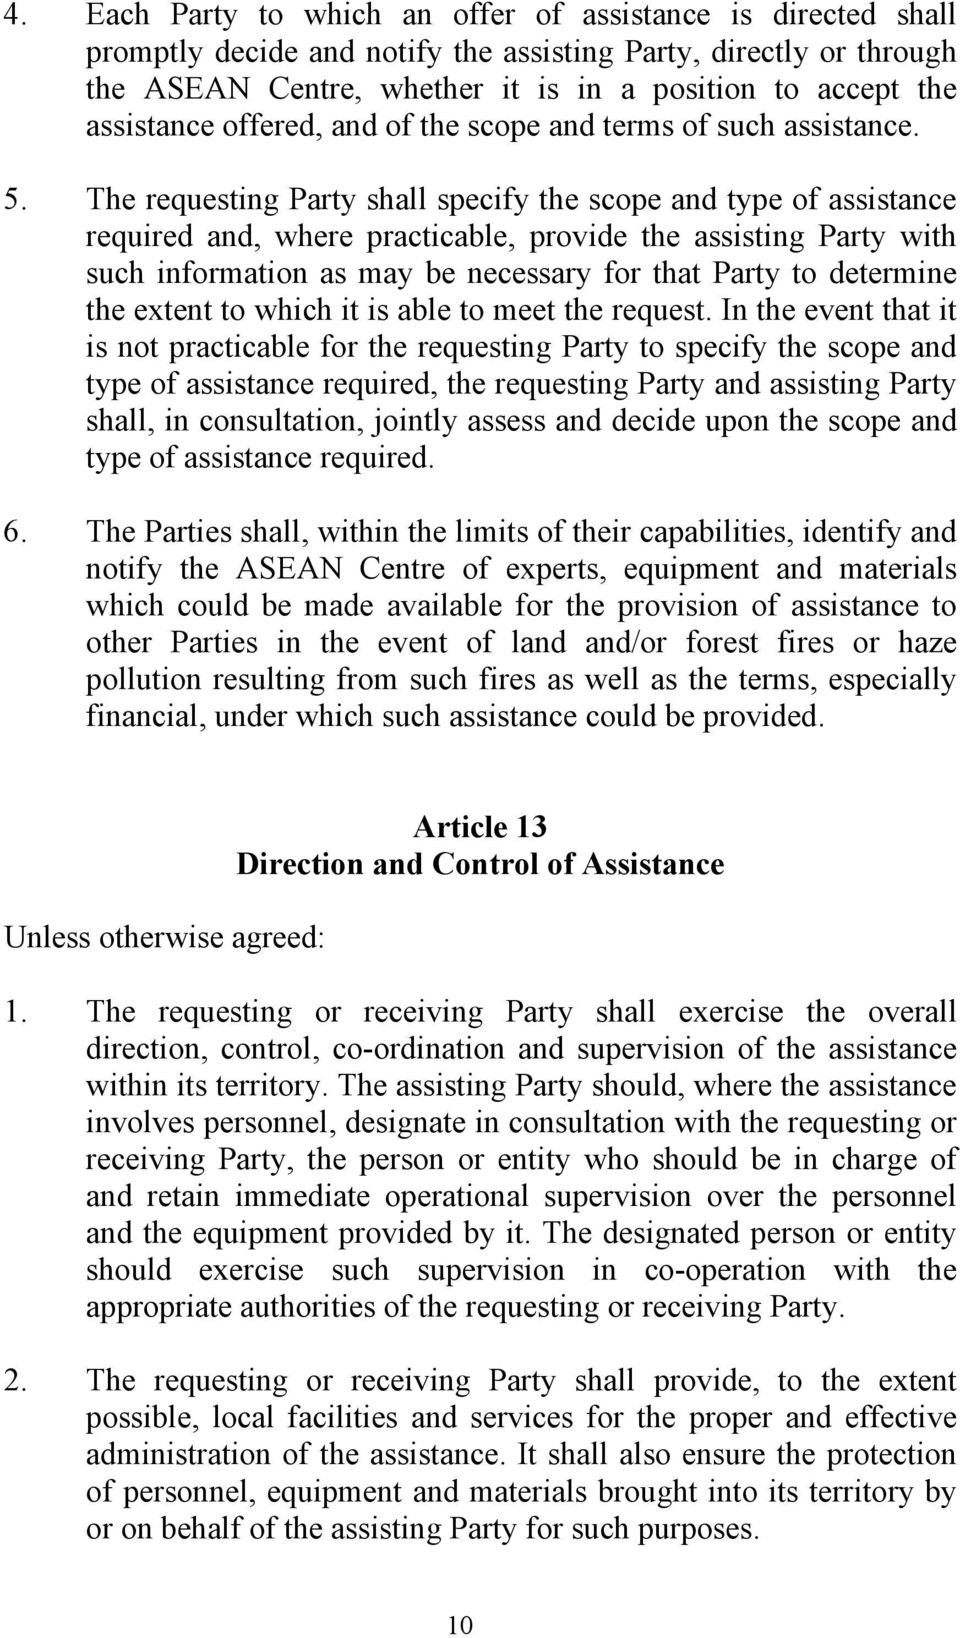 The requesting Party shall specify the scope and type of assistance required and, where practicable, provide the assisting Party with such information as may be necessary for that Party to determine